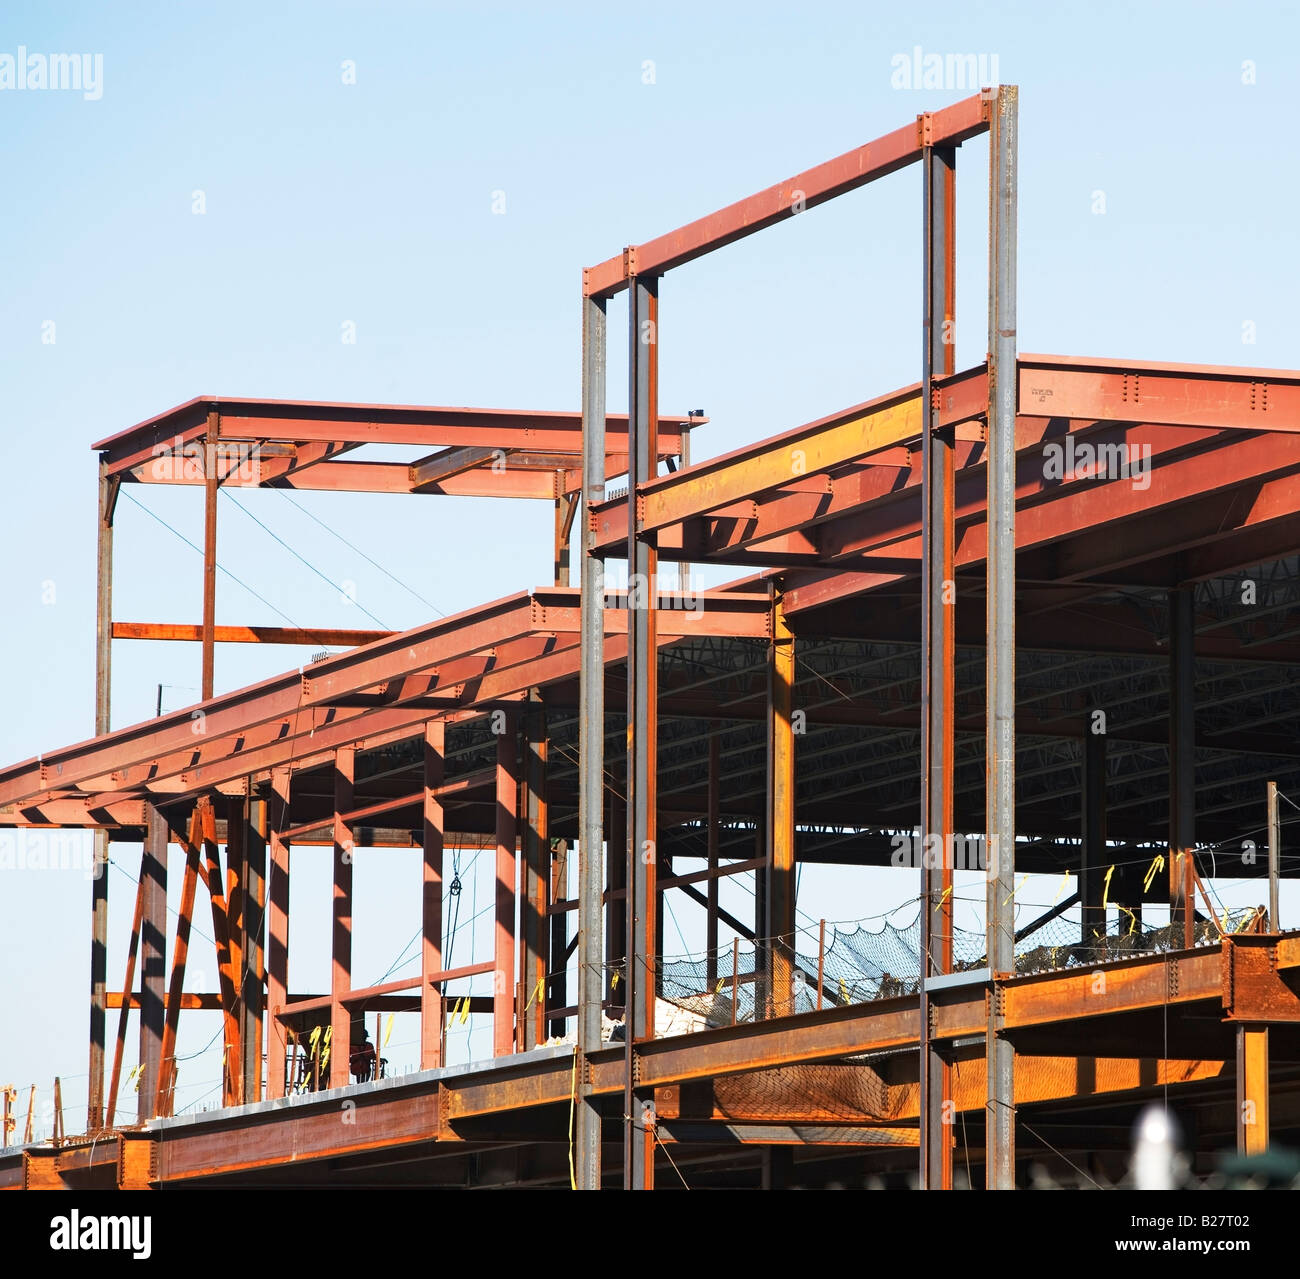 Commercial construction site, New York City, New York, United States - Stock Image